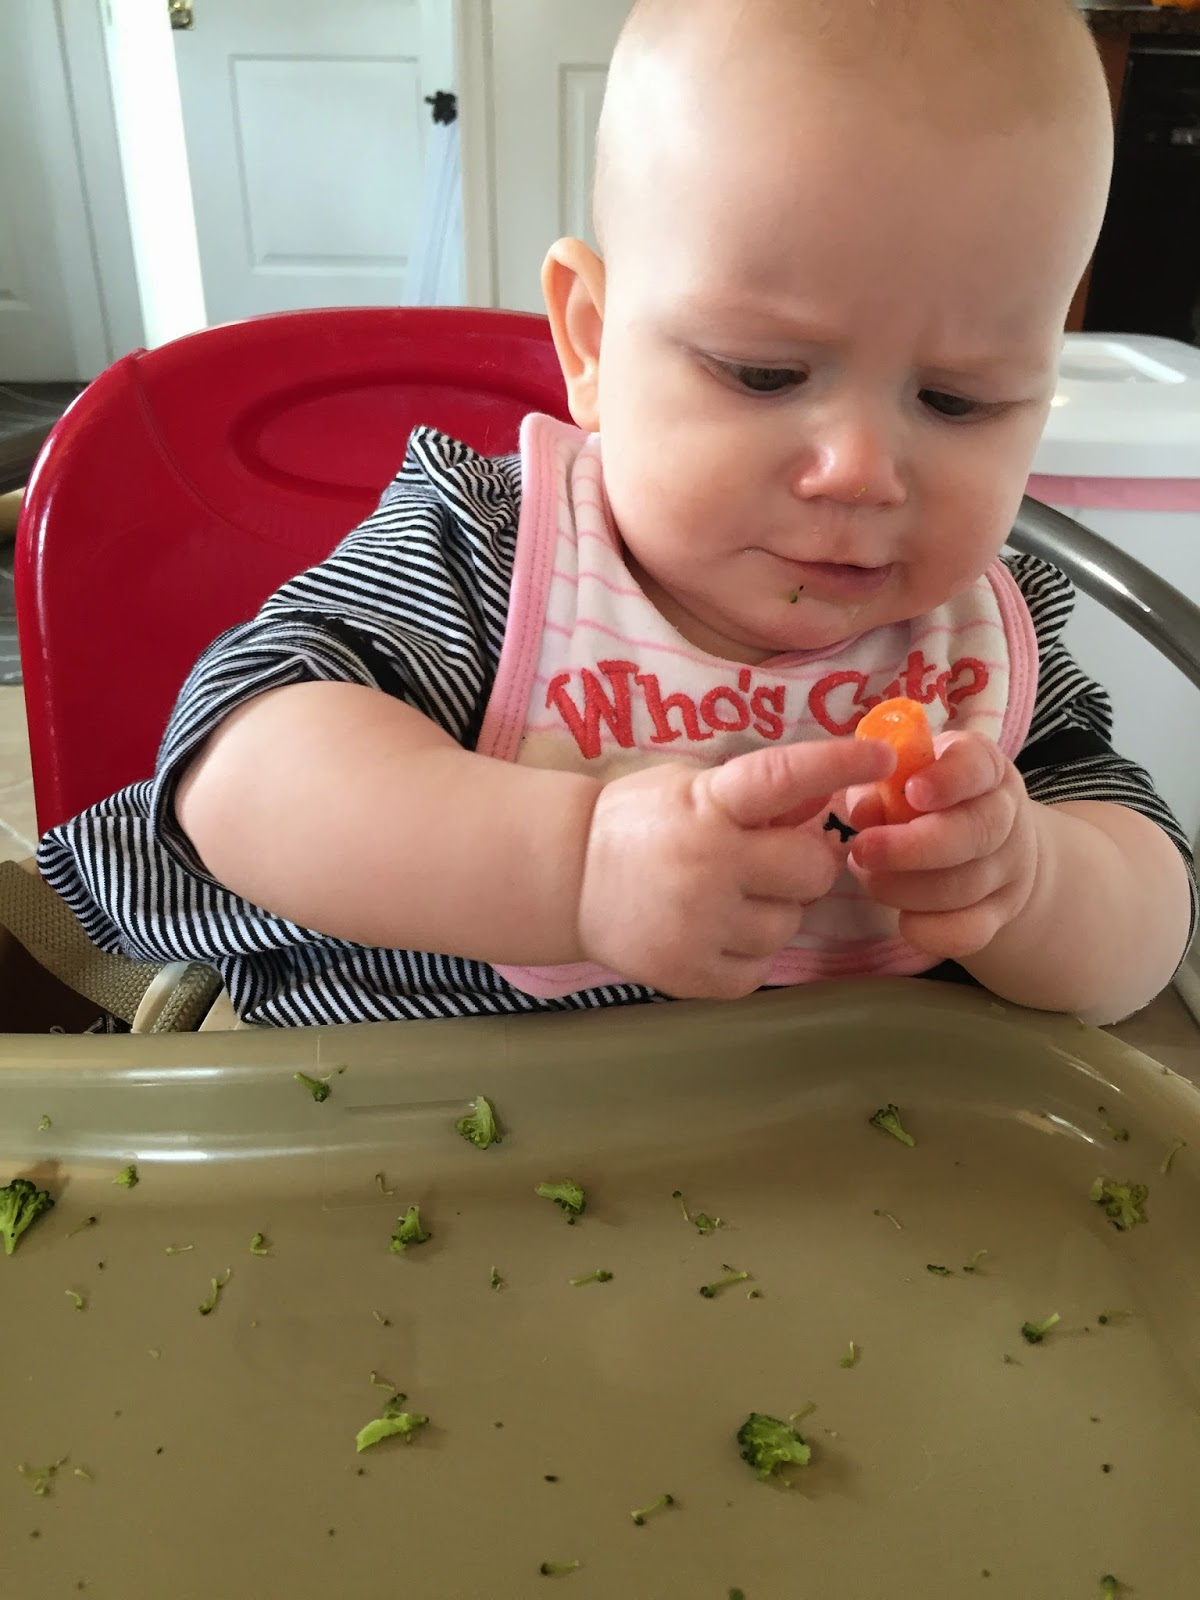 baby lead weaning, blw, baby weaning, food, baby, baby food, babyledweaning